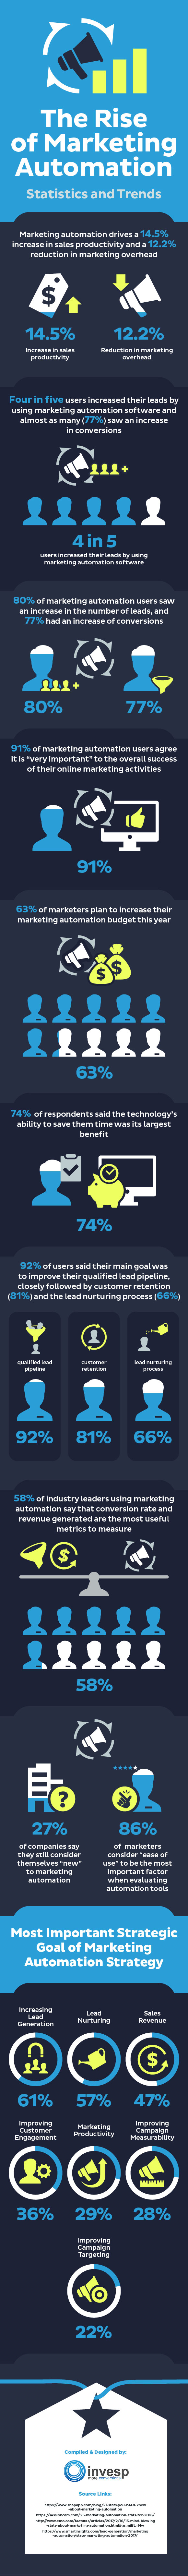 21-Marketing-Automation-Stats-That-Will-Make-You-Rethink-Your-Marketing-Strategy